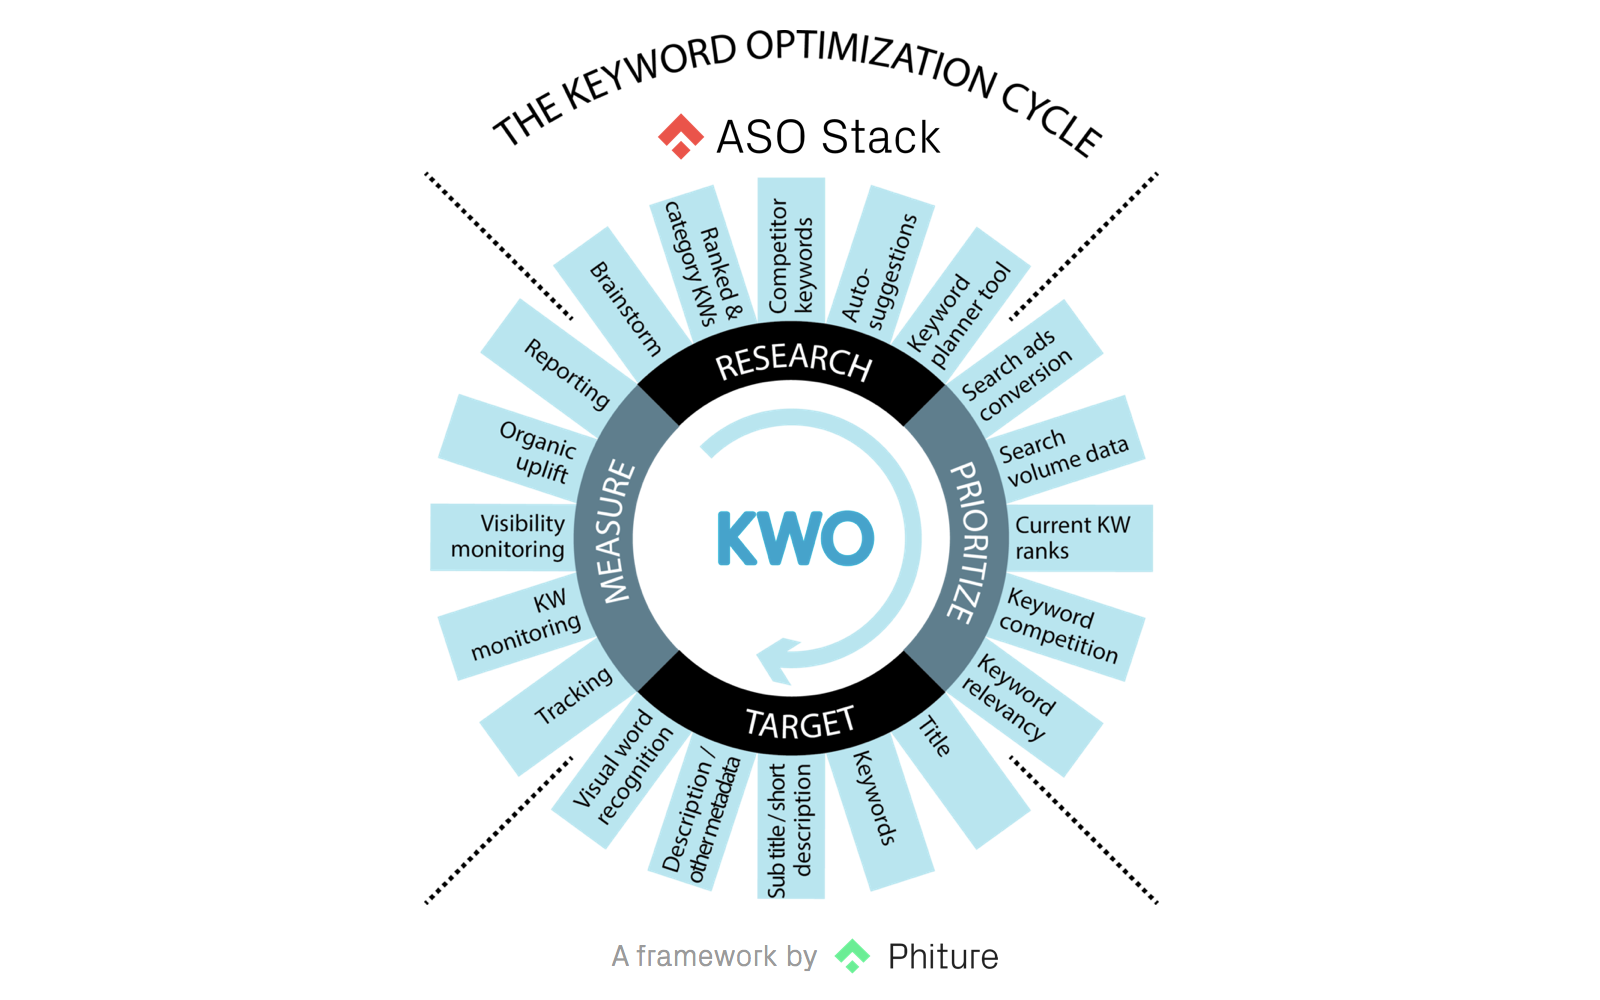 app store optimziation process for keywords